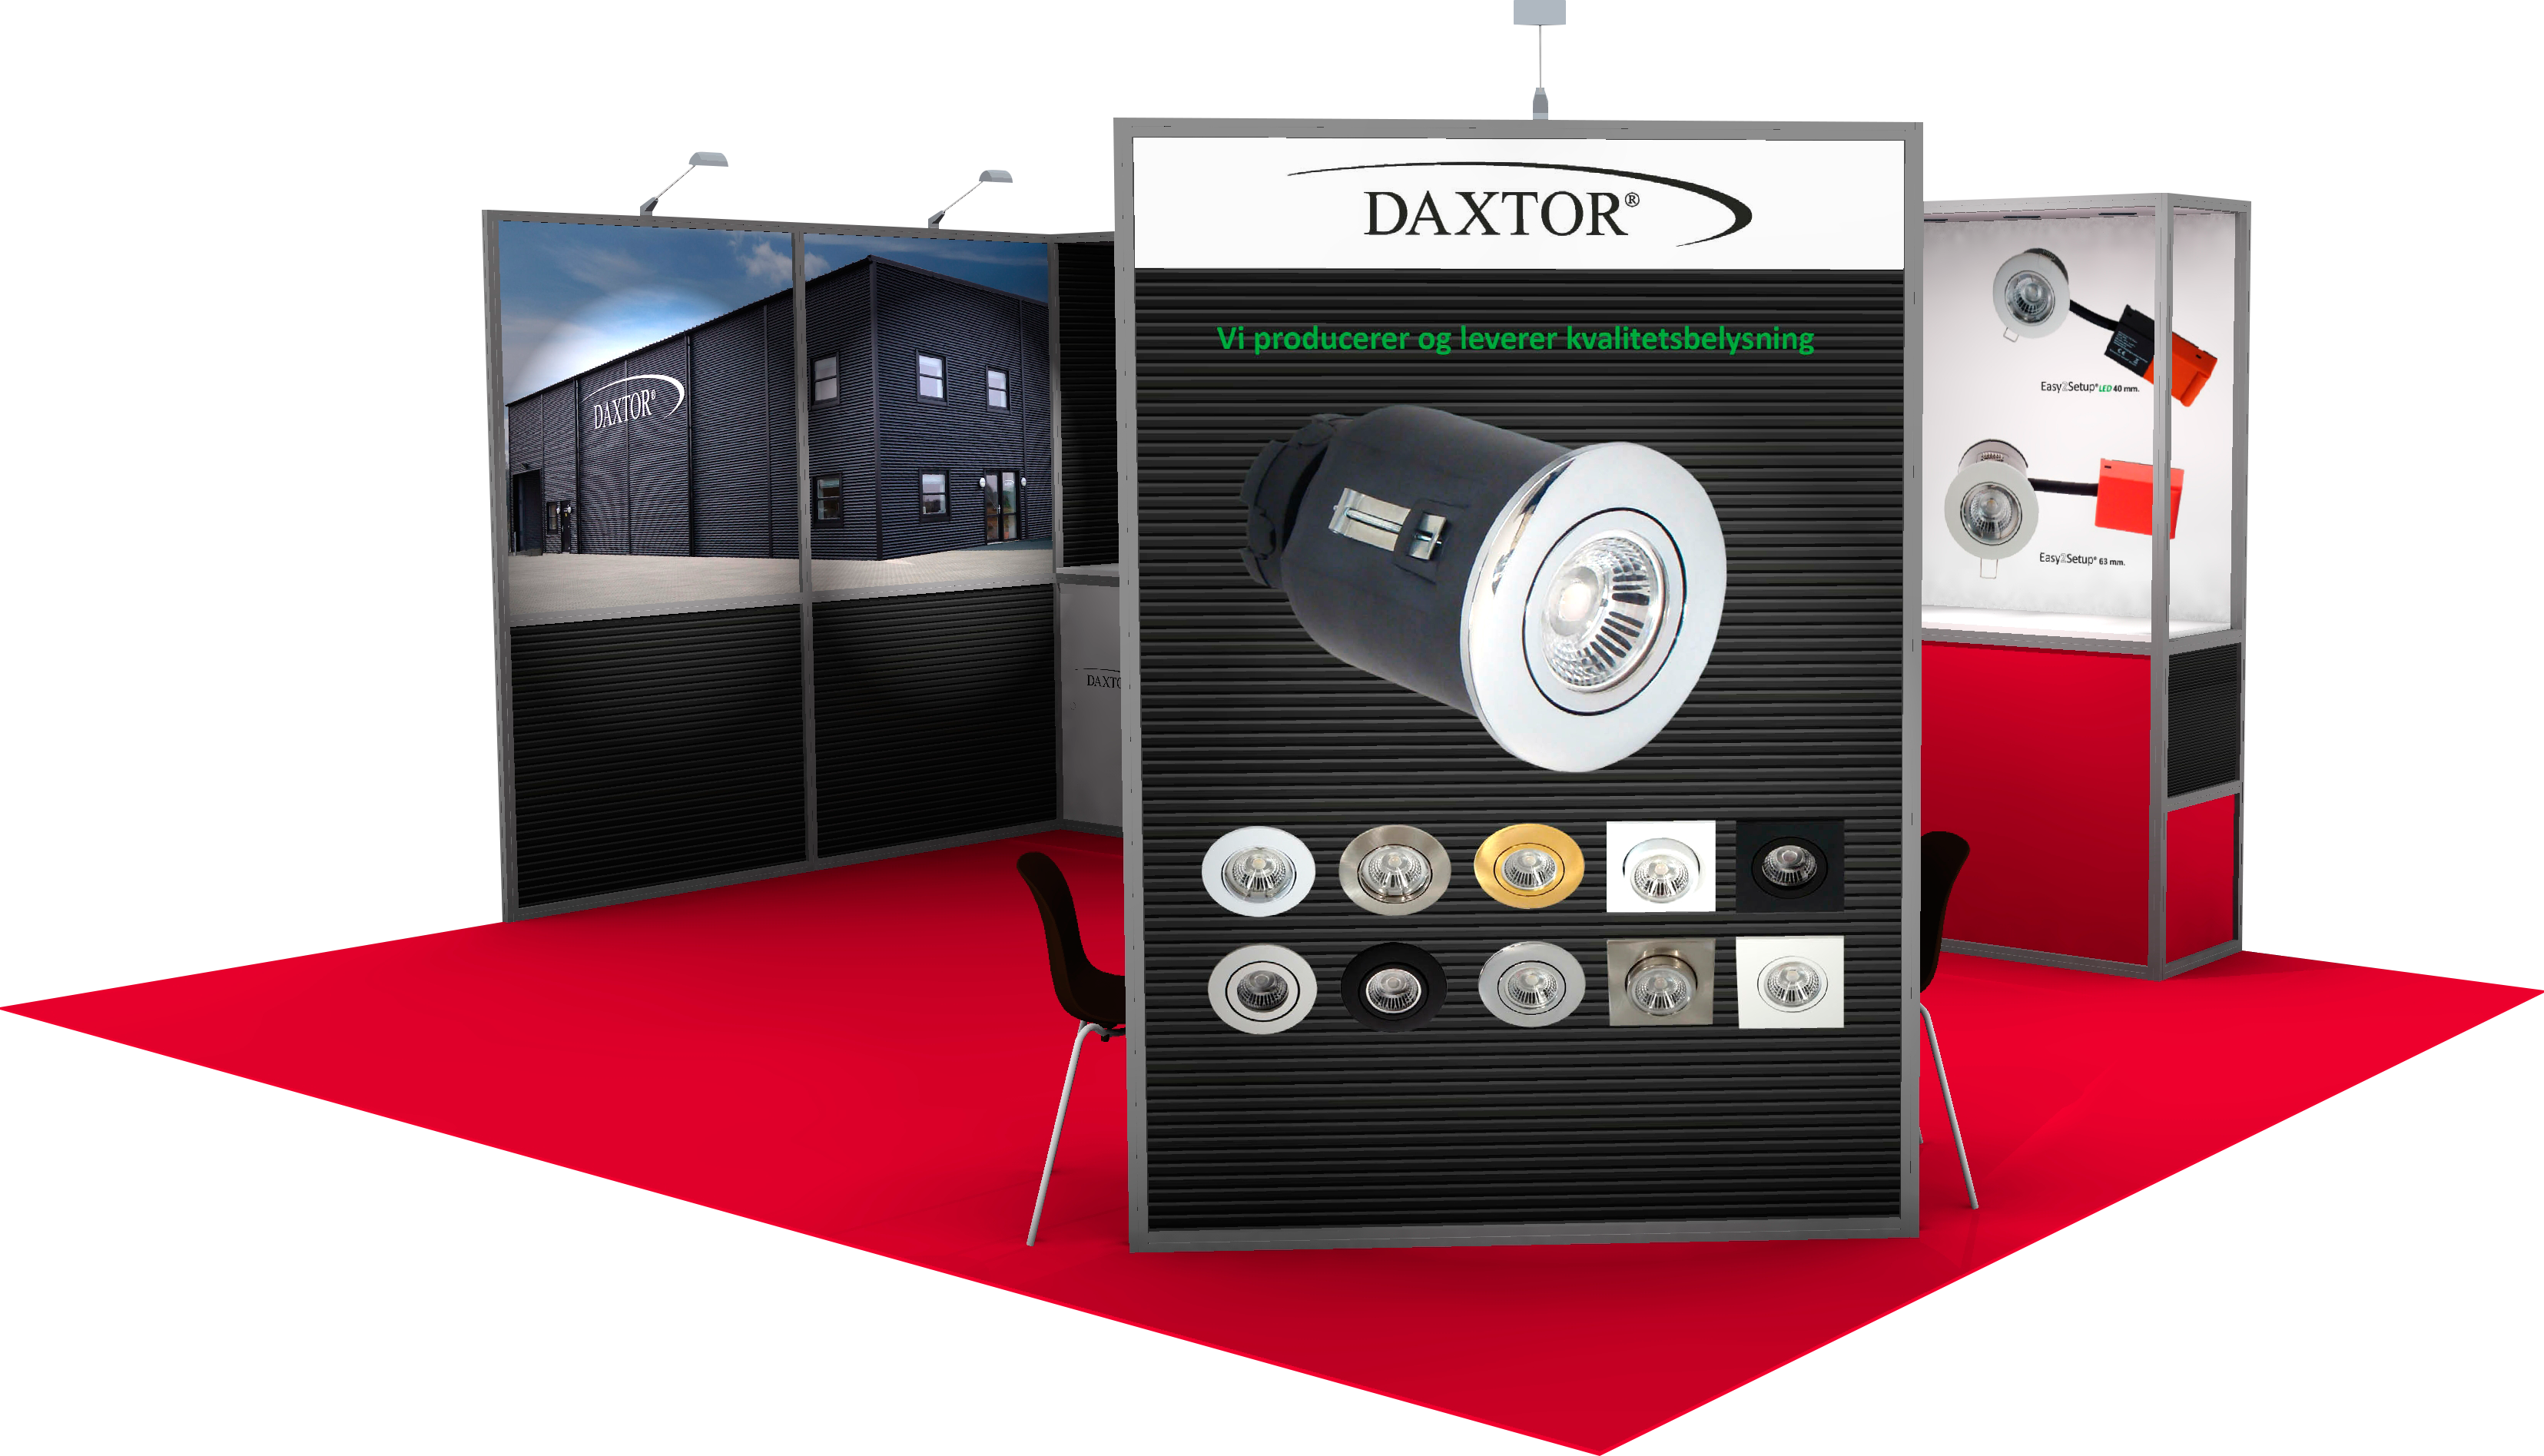 3D_daxtor_messestand